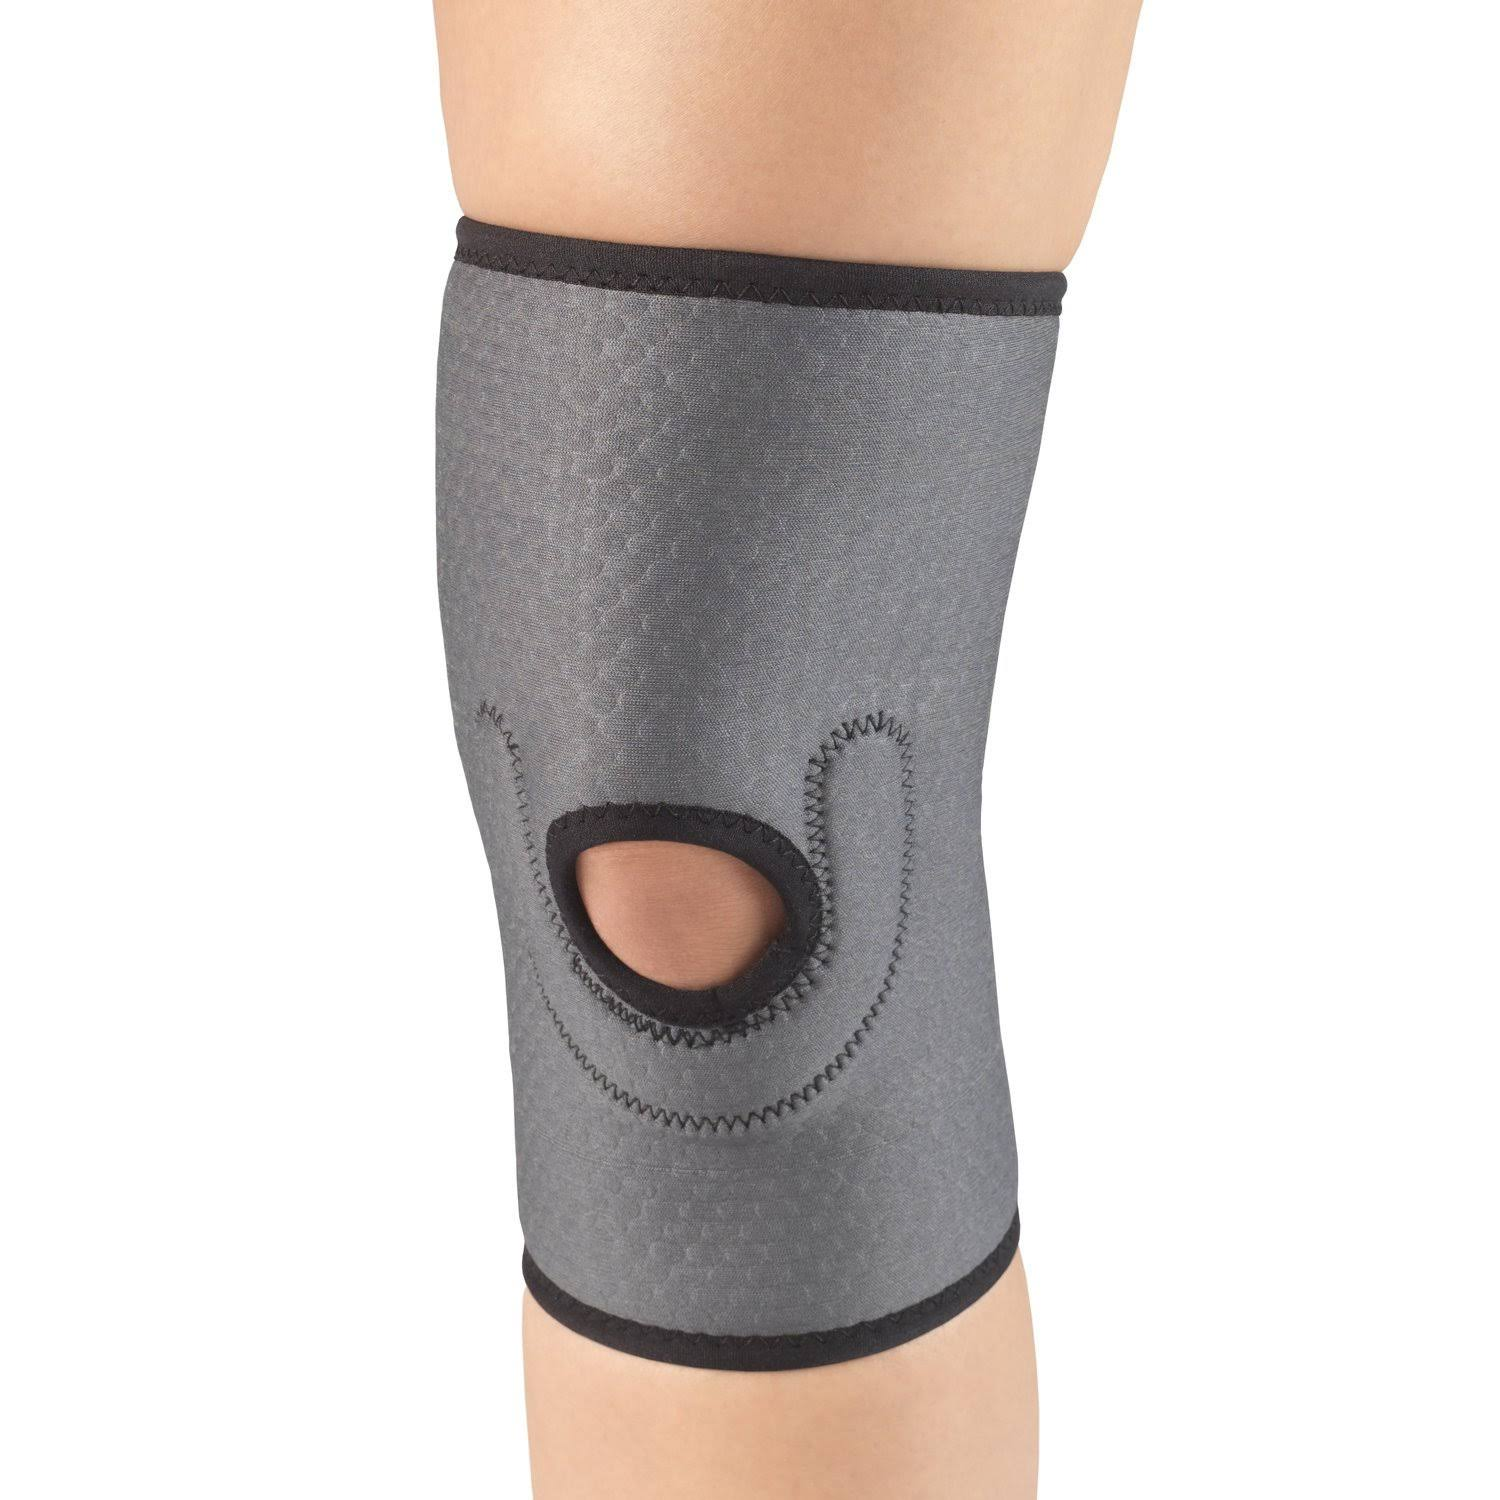 Champion Airmesh Knee Support - Grey, Medium